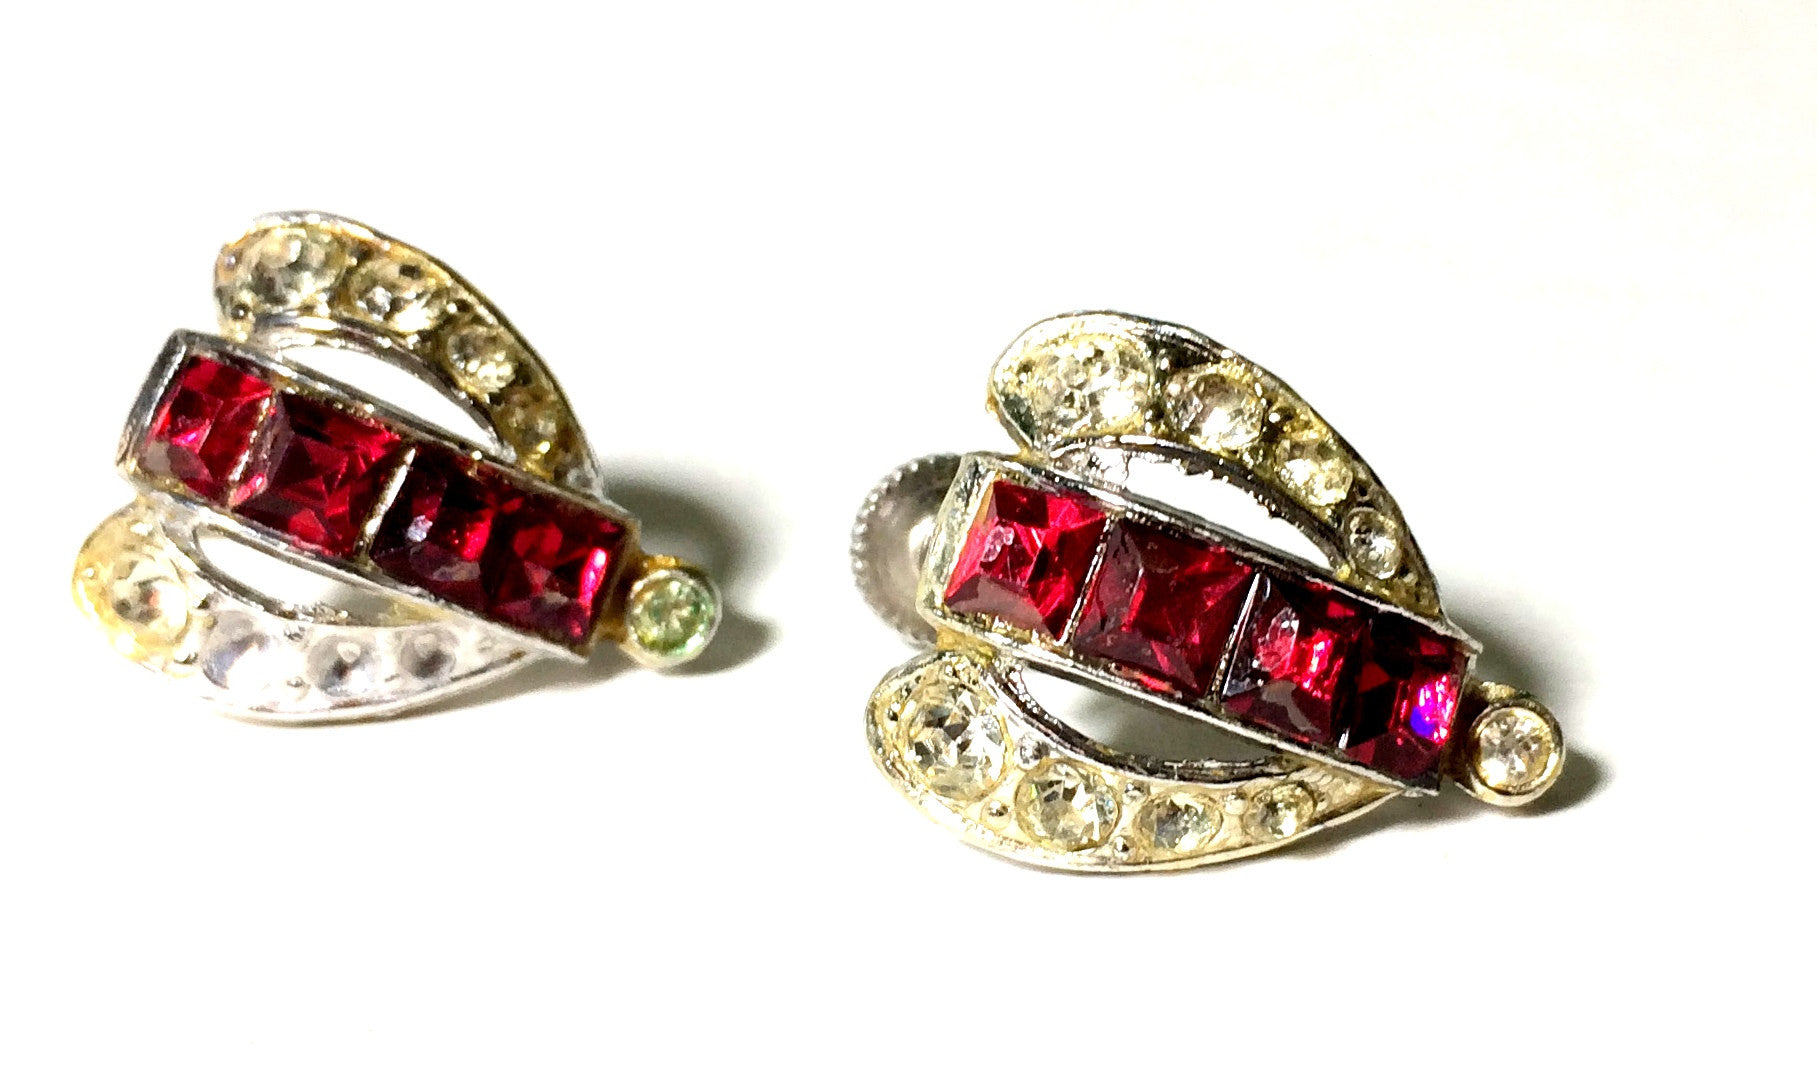 Vampy Red Rhinestone Clip Earrings circa 1950s